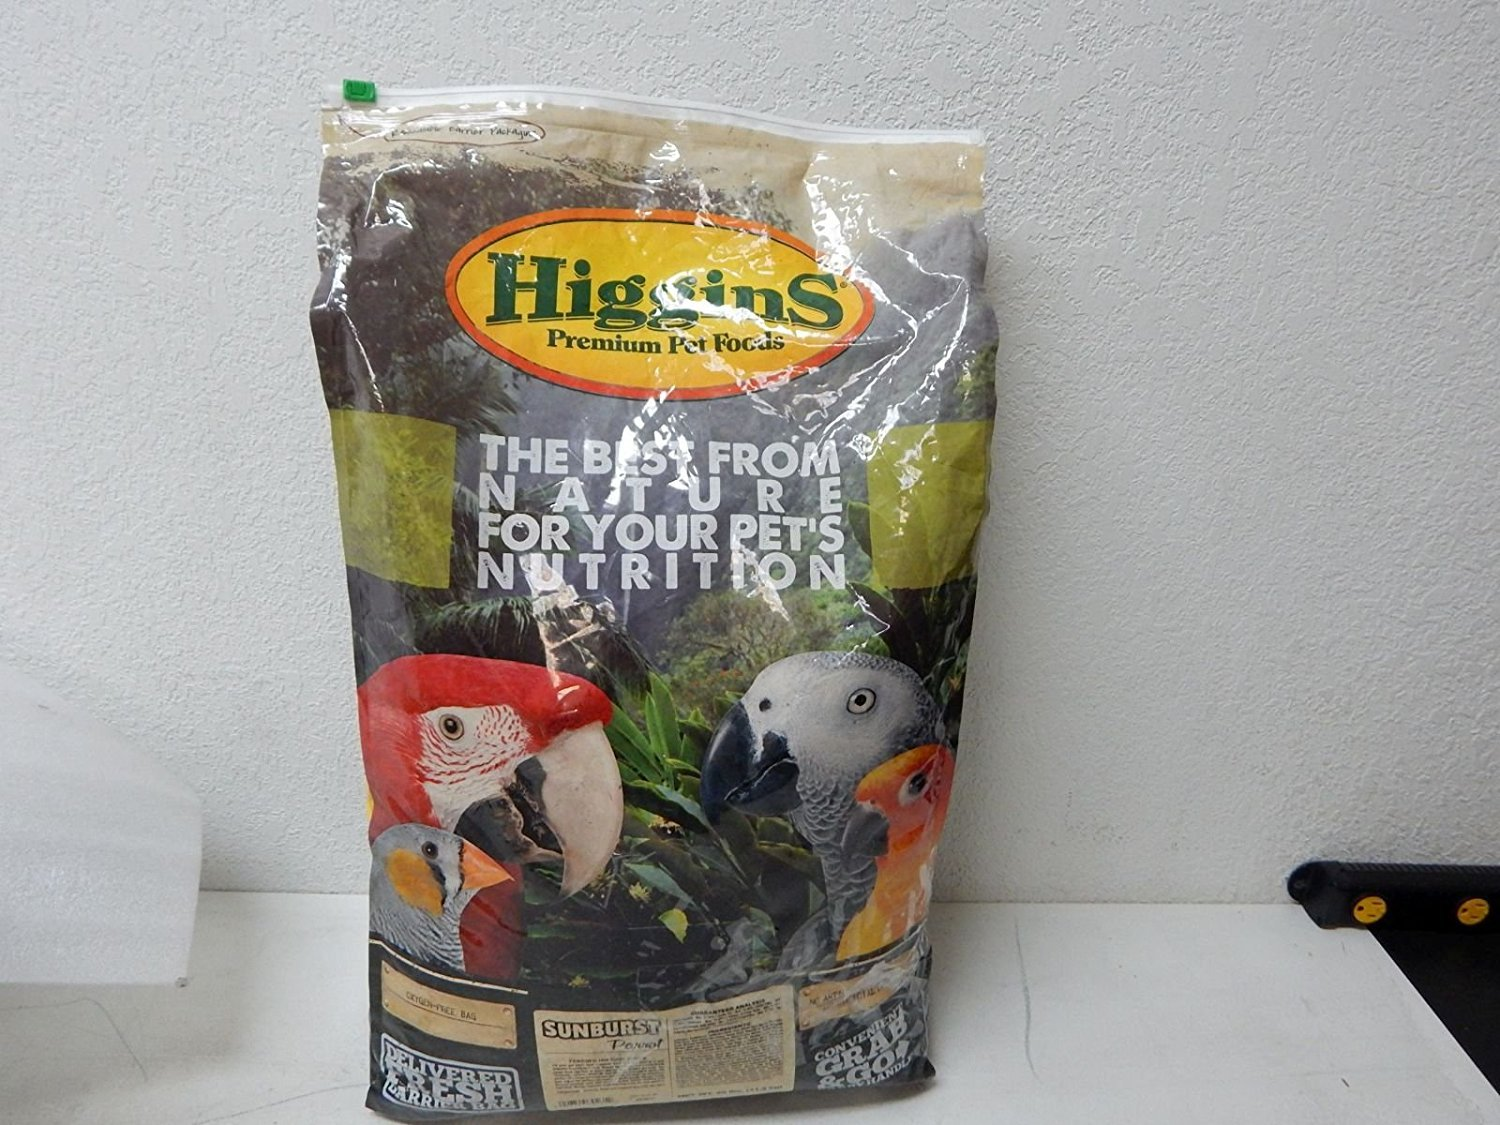 Higgins 466186 Higg Sunburst Food For Parrot, 25-Pound by Higgins